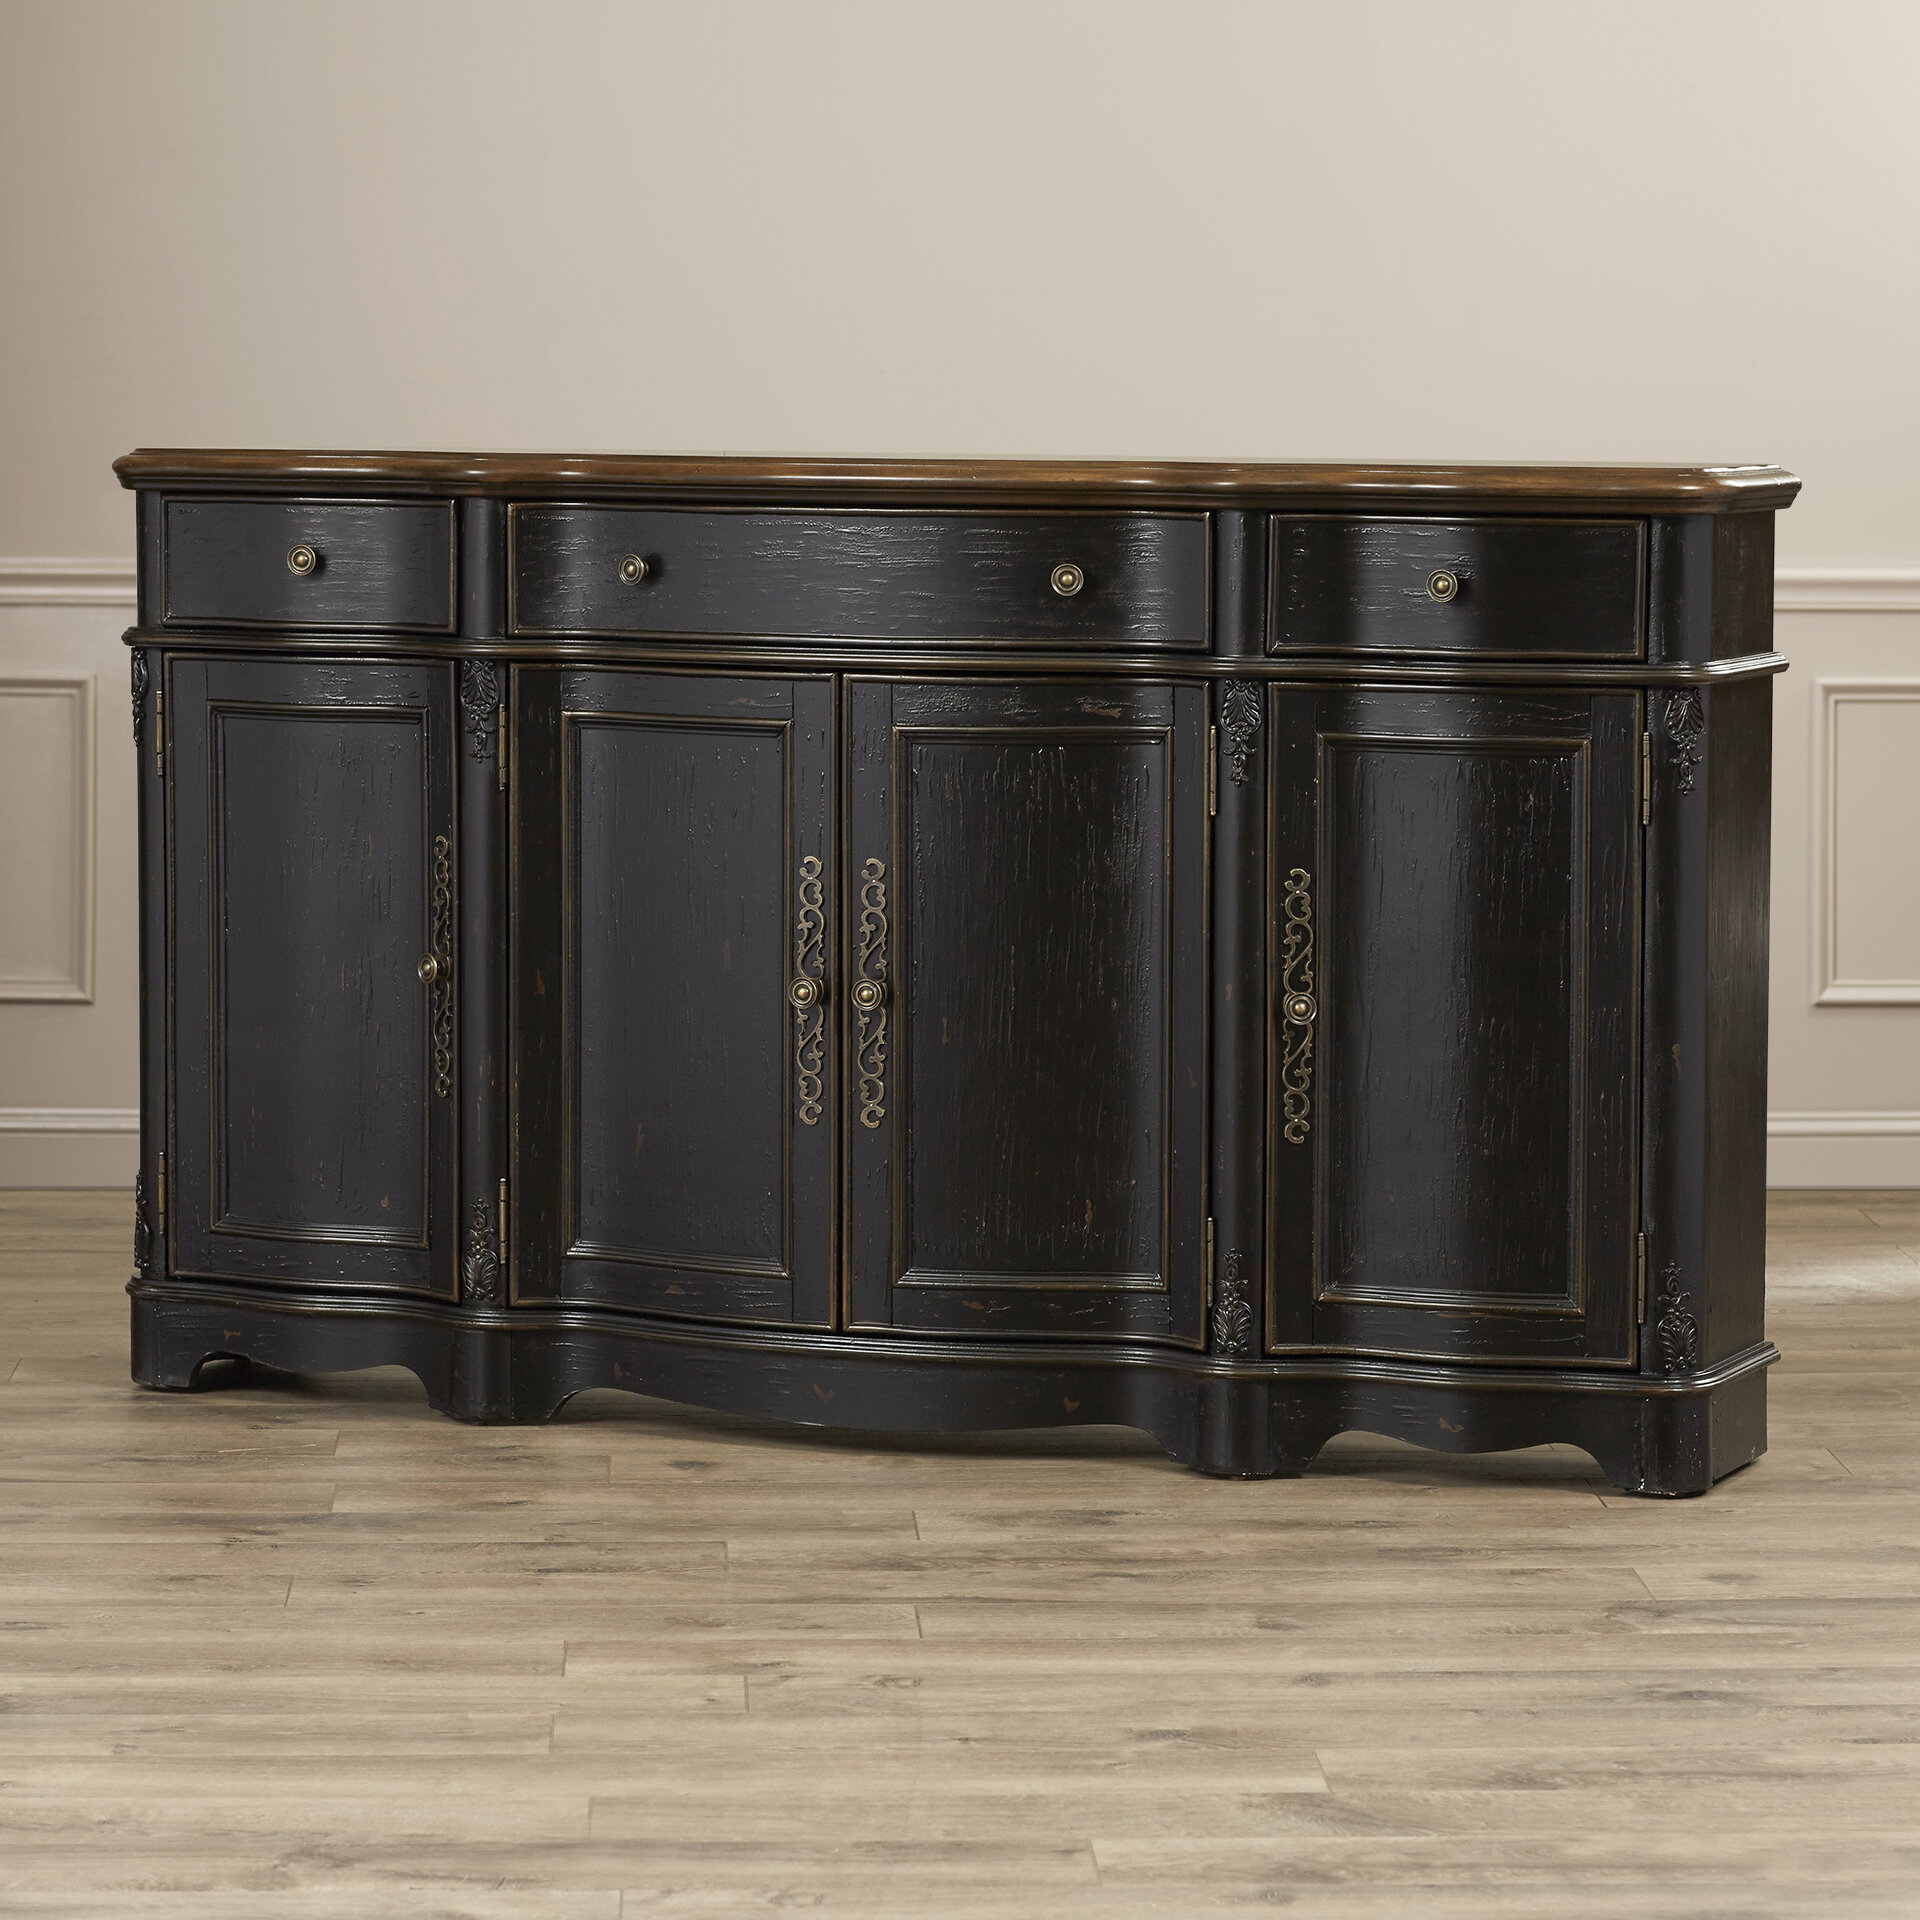 Darby Home Co Hewlett Sideboard & Reviews | Wayfair For Solana Sideboards (Gallery 12 of 30)